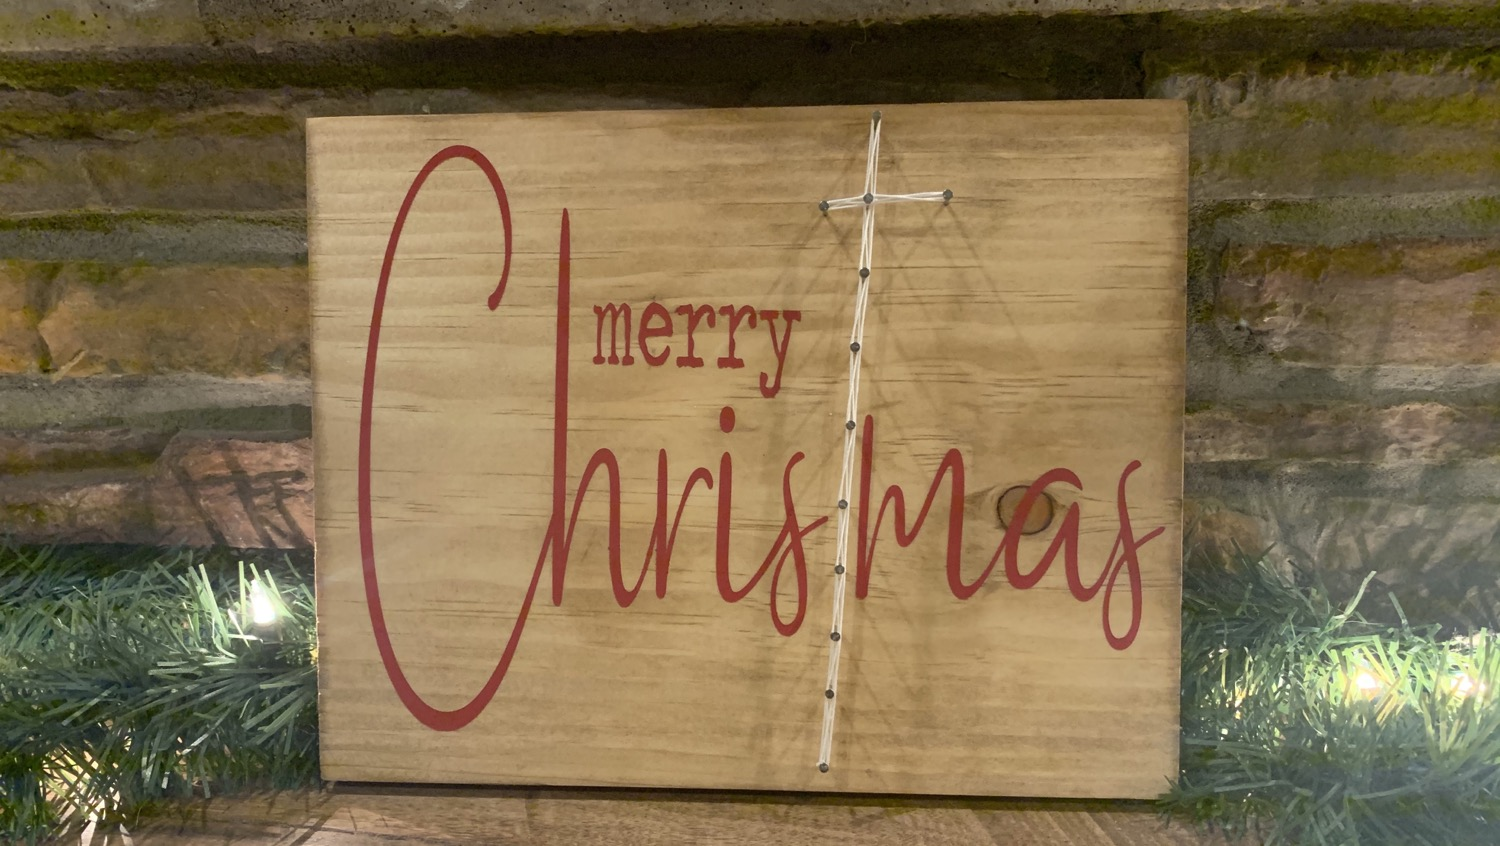 Merry Christmas Paint & String!